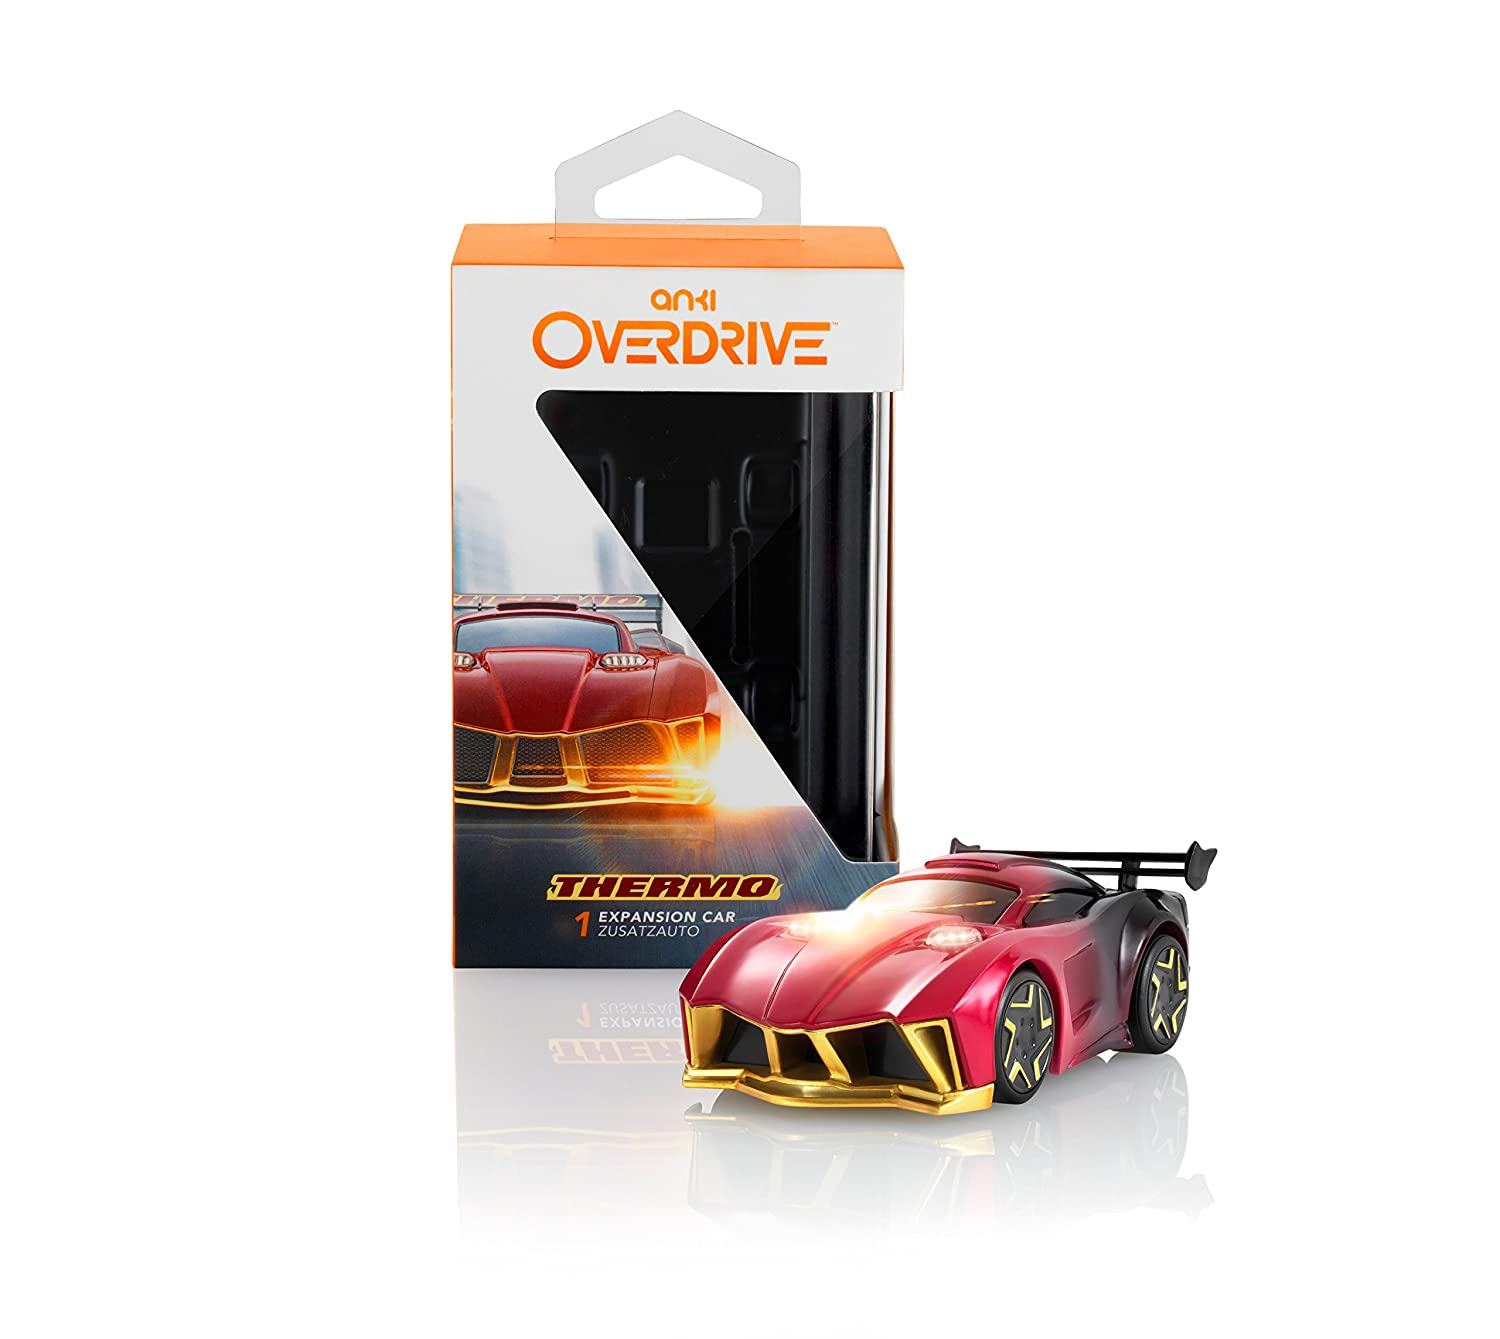 anki overdrive guardian thermo expansion car ebay. Black Bedroom Furniture Sets. Home Design Ideas